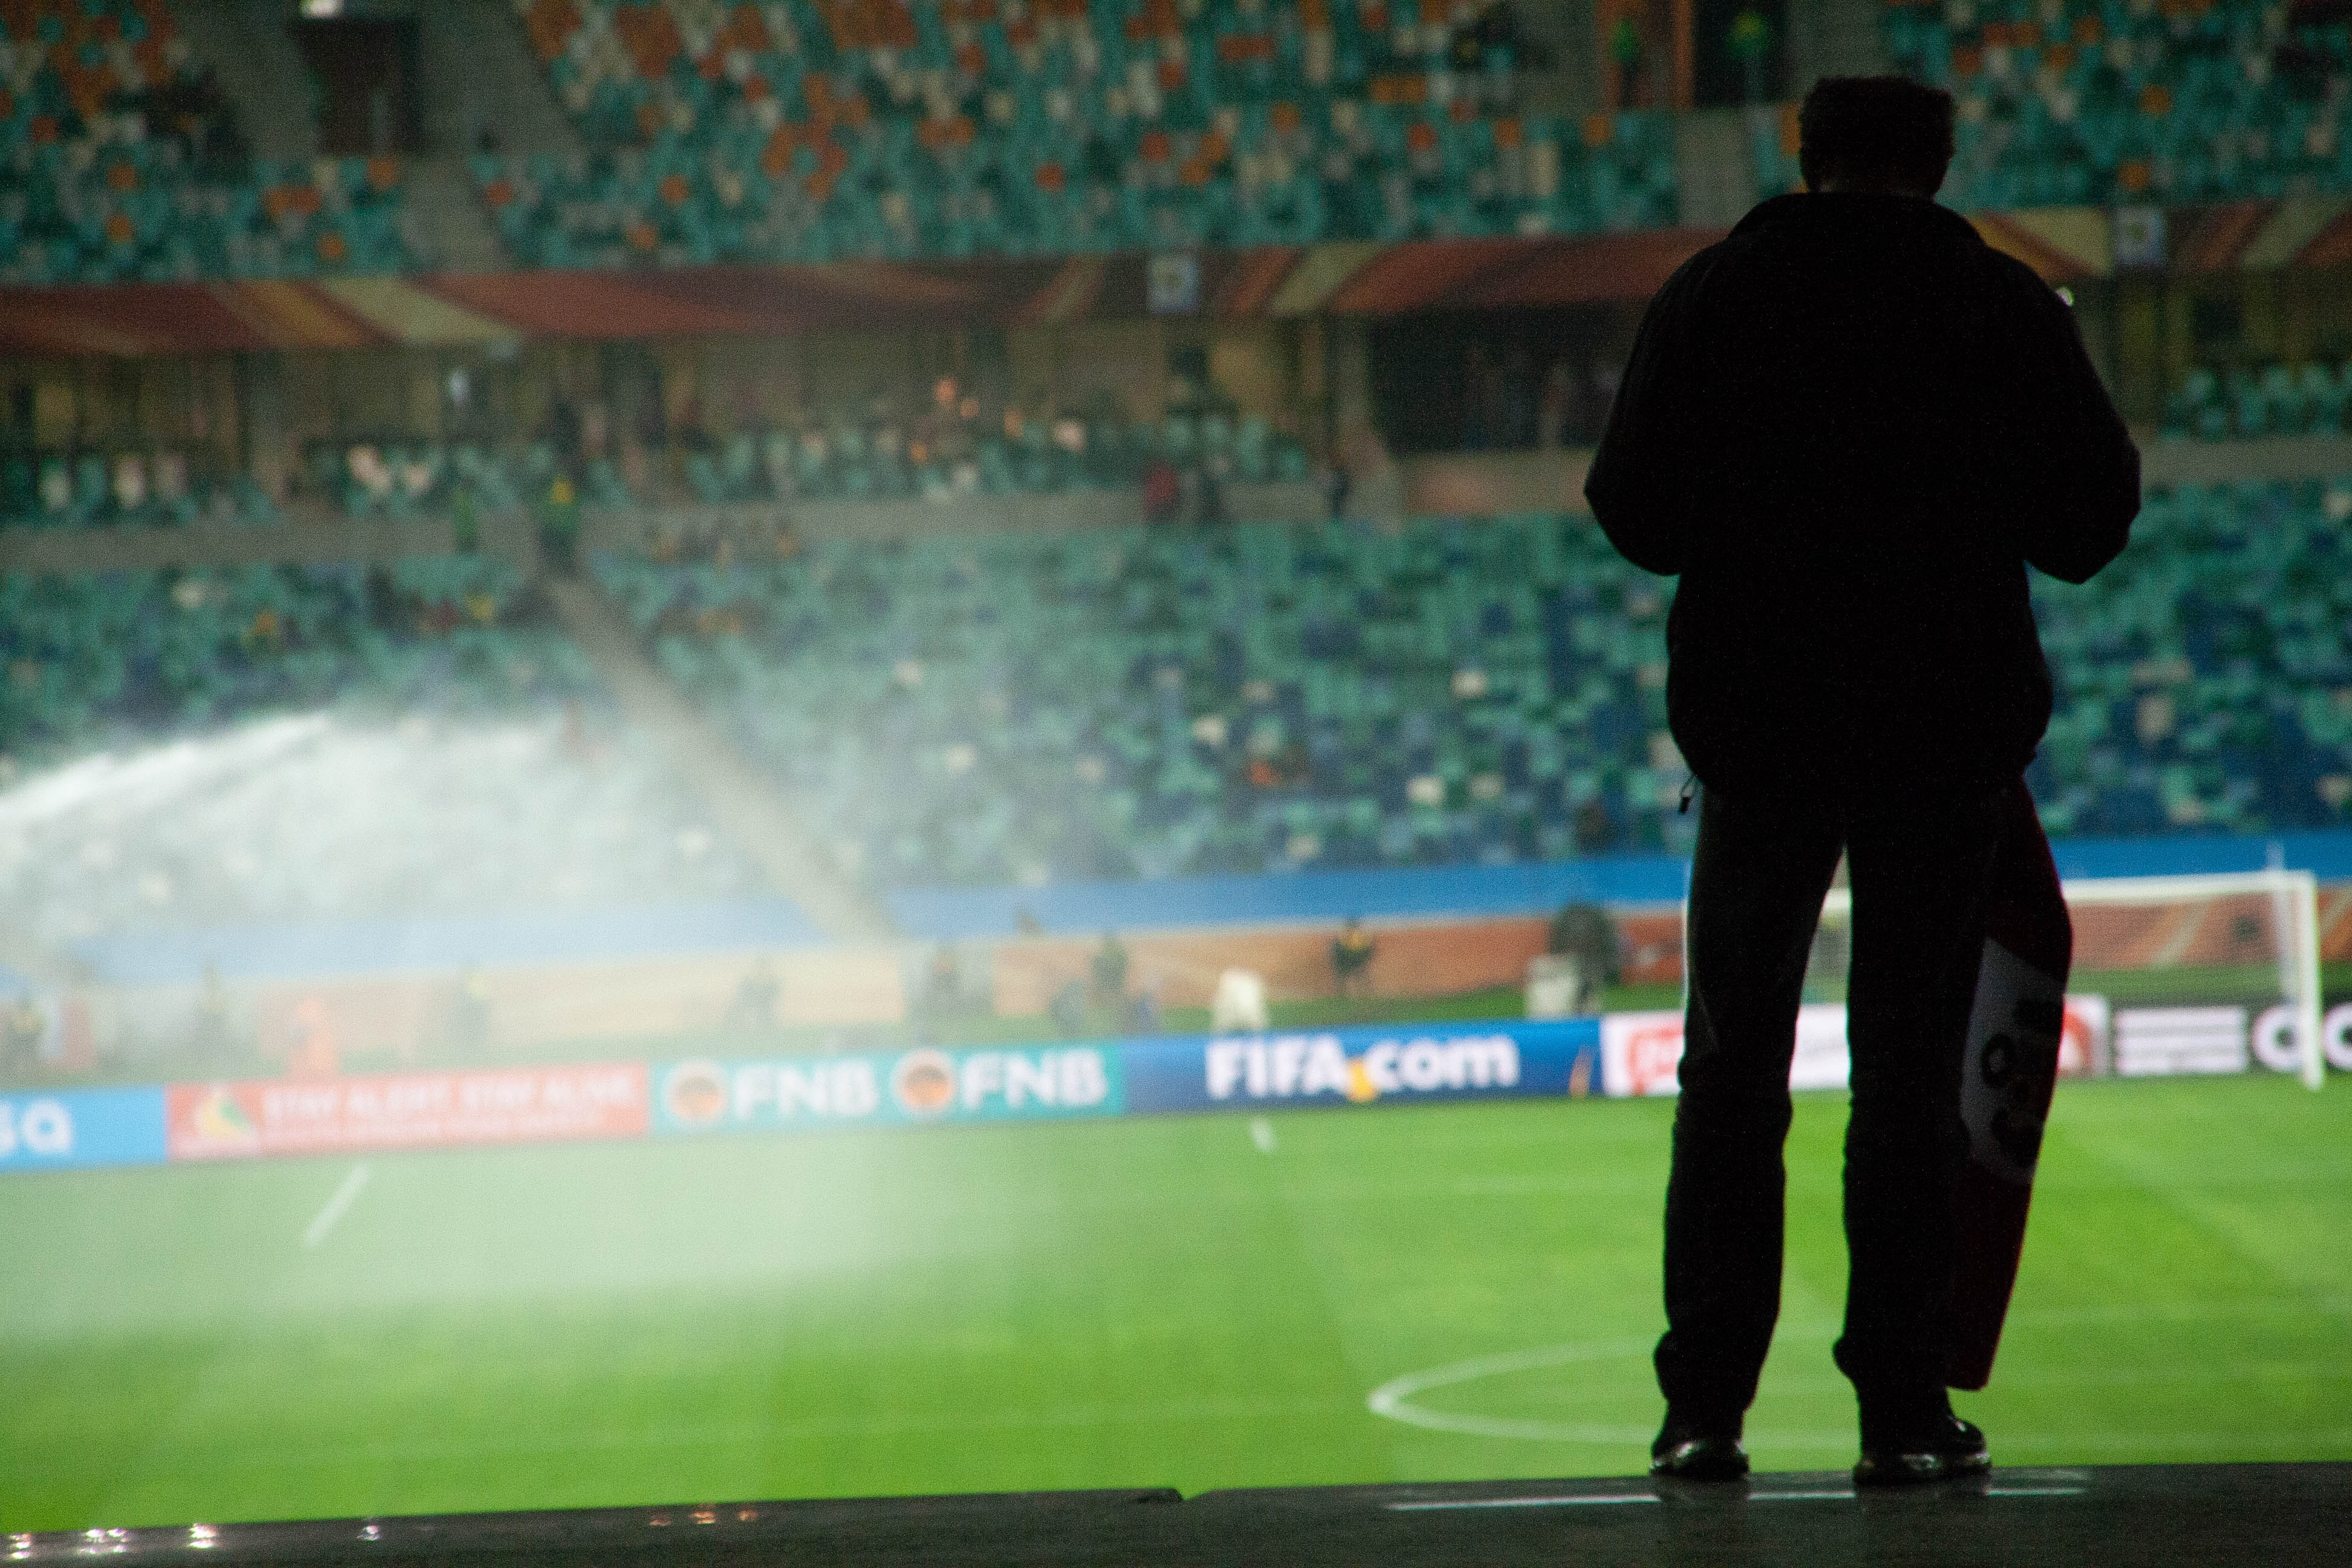 THEORETICAL CASE STUDY OF SPORTS CORRUPTION  AND THE LAW OF TRUST